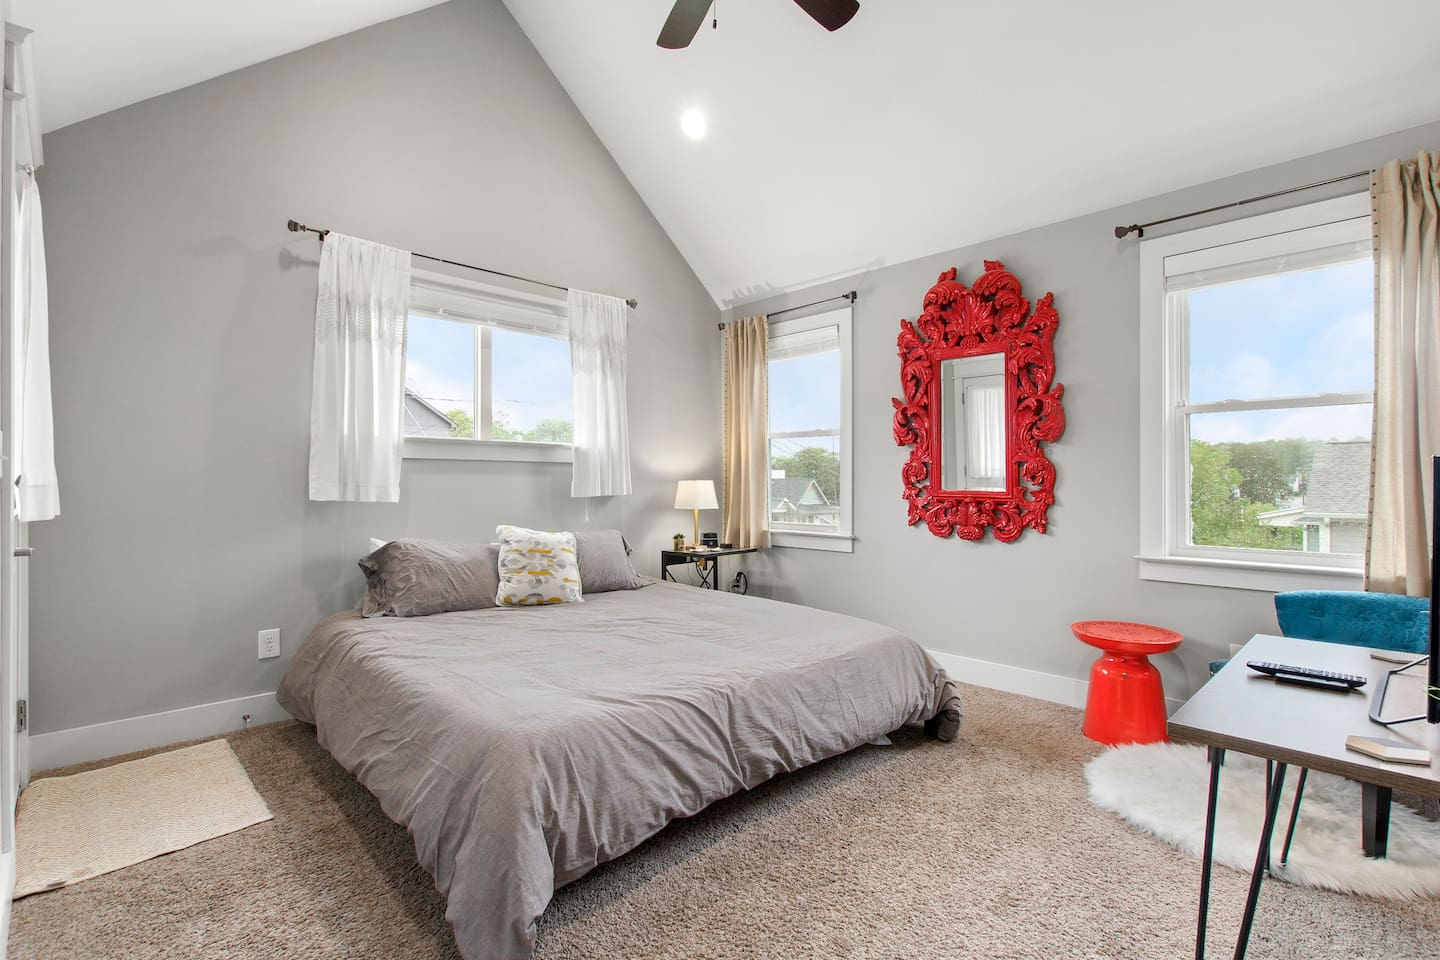 MASTER Private bedroom located upstairs front of house - King sized platform bed with brand new memory foam mattress and organic cotton sheets, massive walk-in closet with built-in shelves, in-suite private bathroom and private balcony